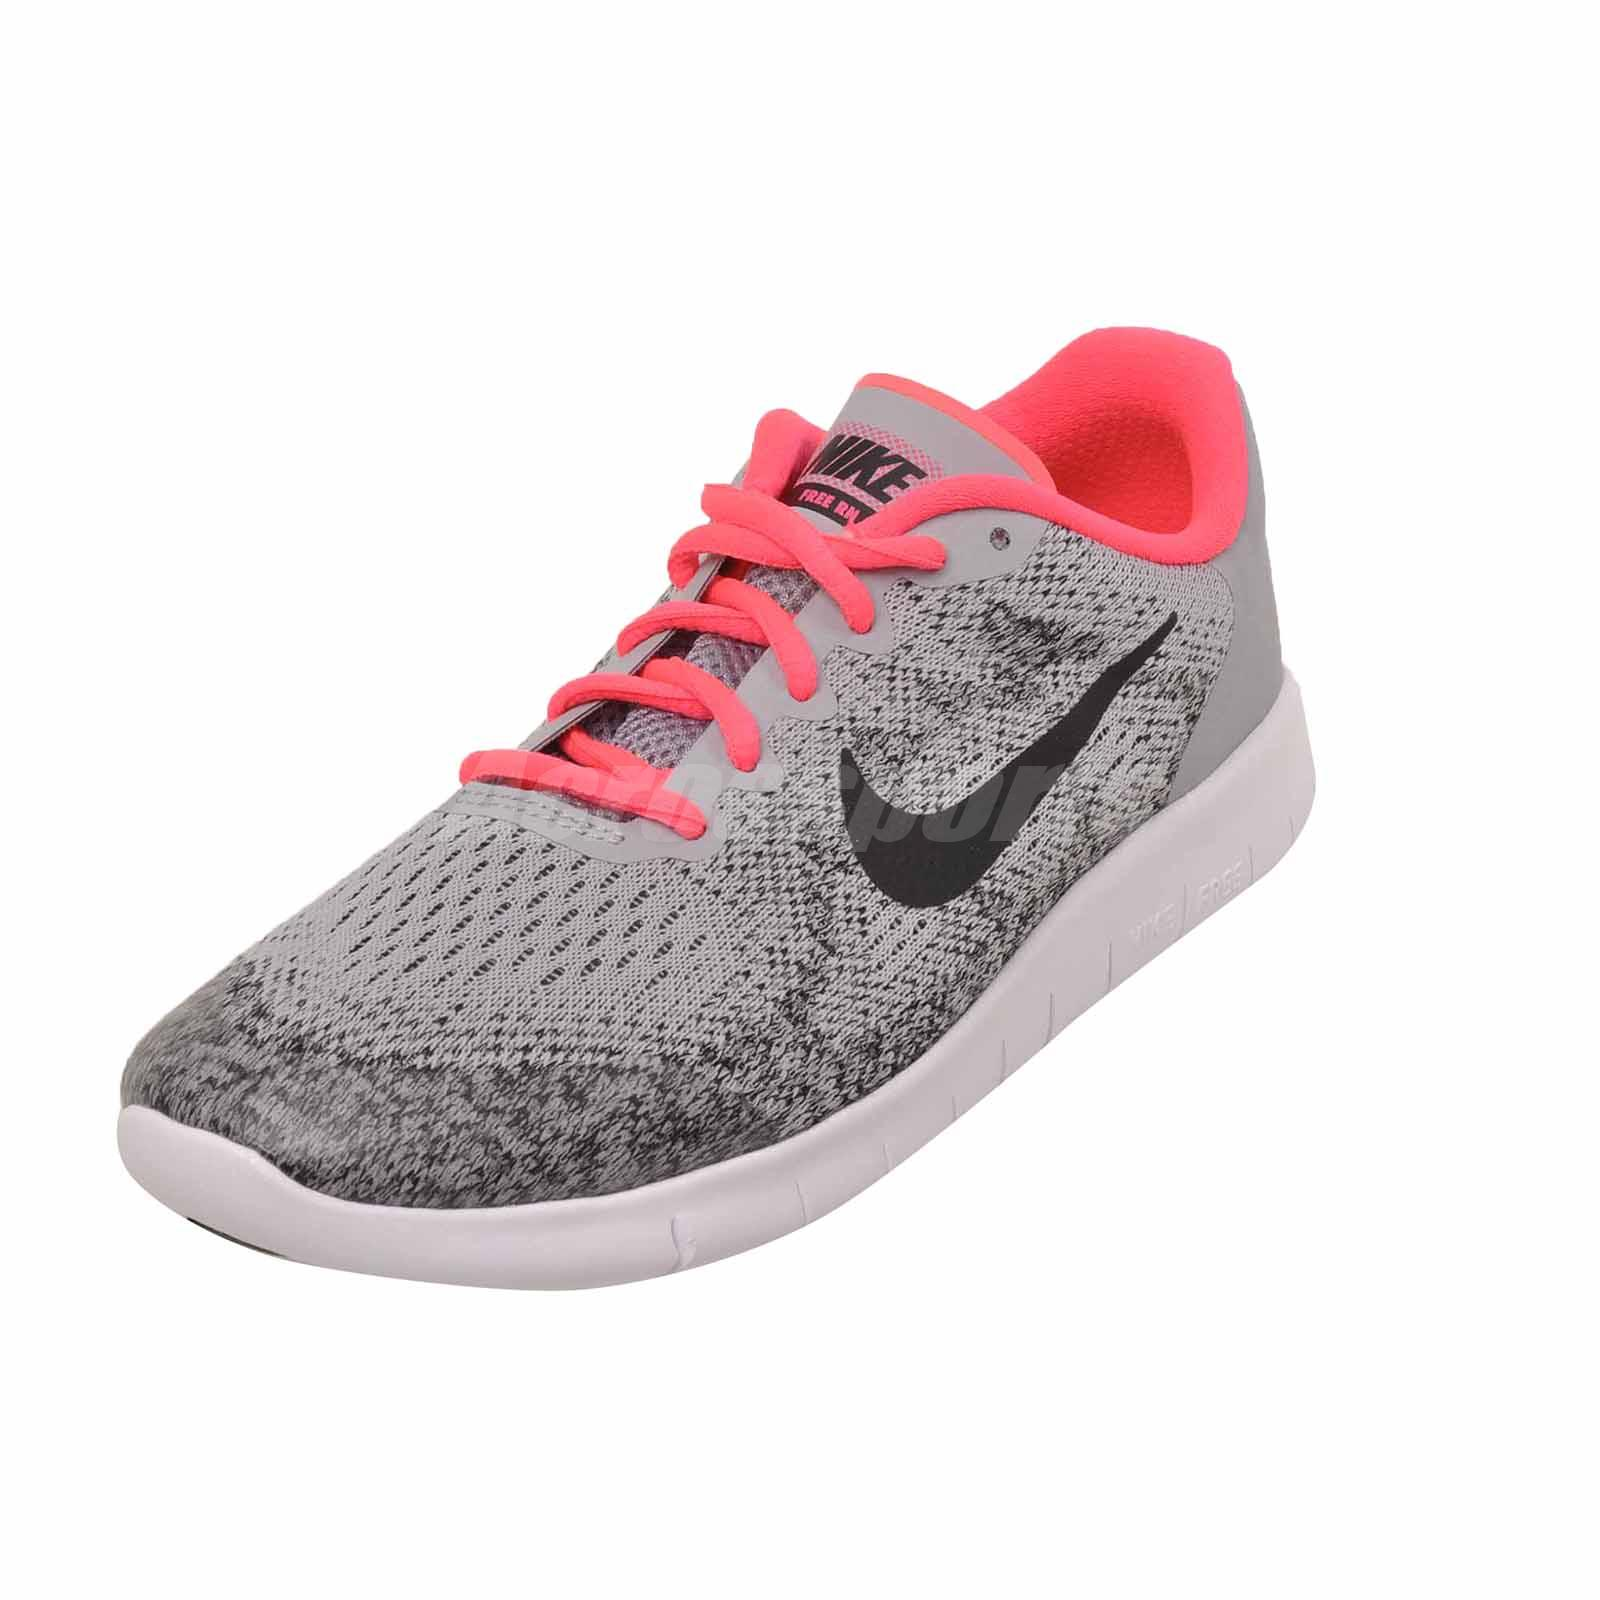 Shoes Kids Free Running Grey Rn Nike 2017 Wolf Youth Womens Gs wIq0817Z